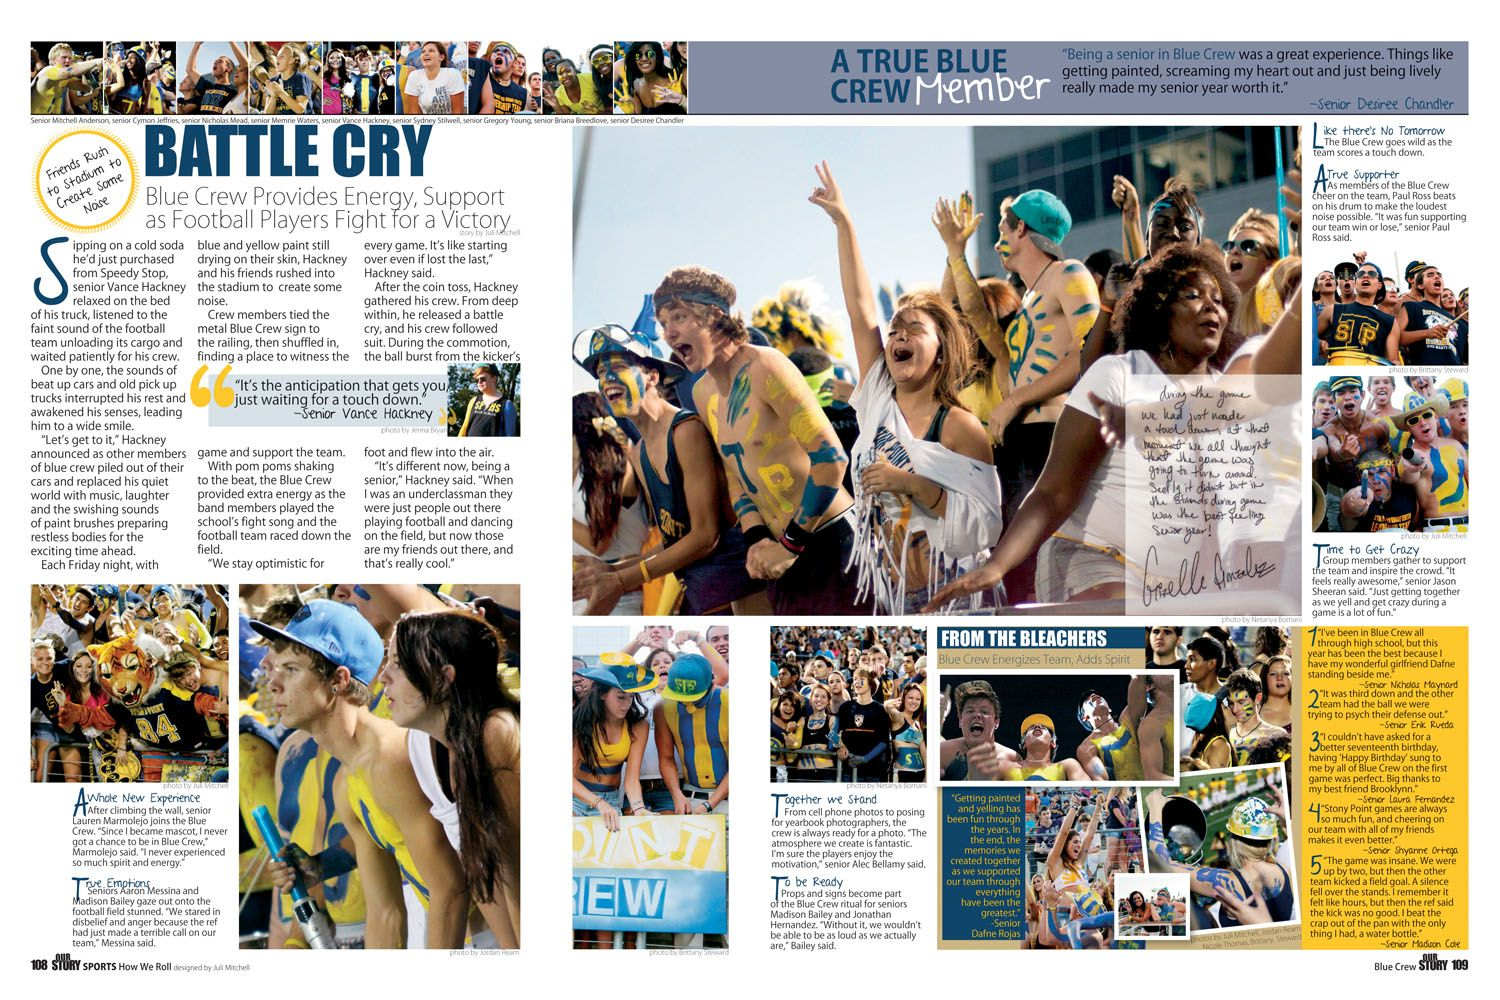 Pin on yearbook spreads  |Academic Spreads For Yearbook Ideas